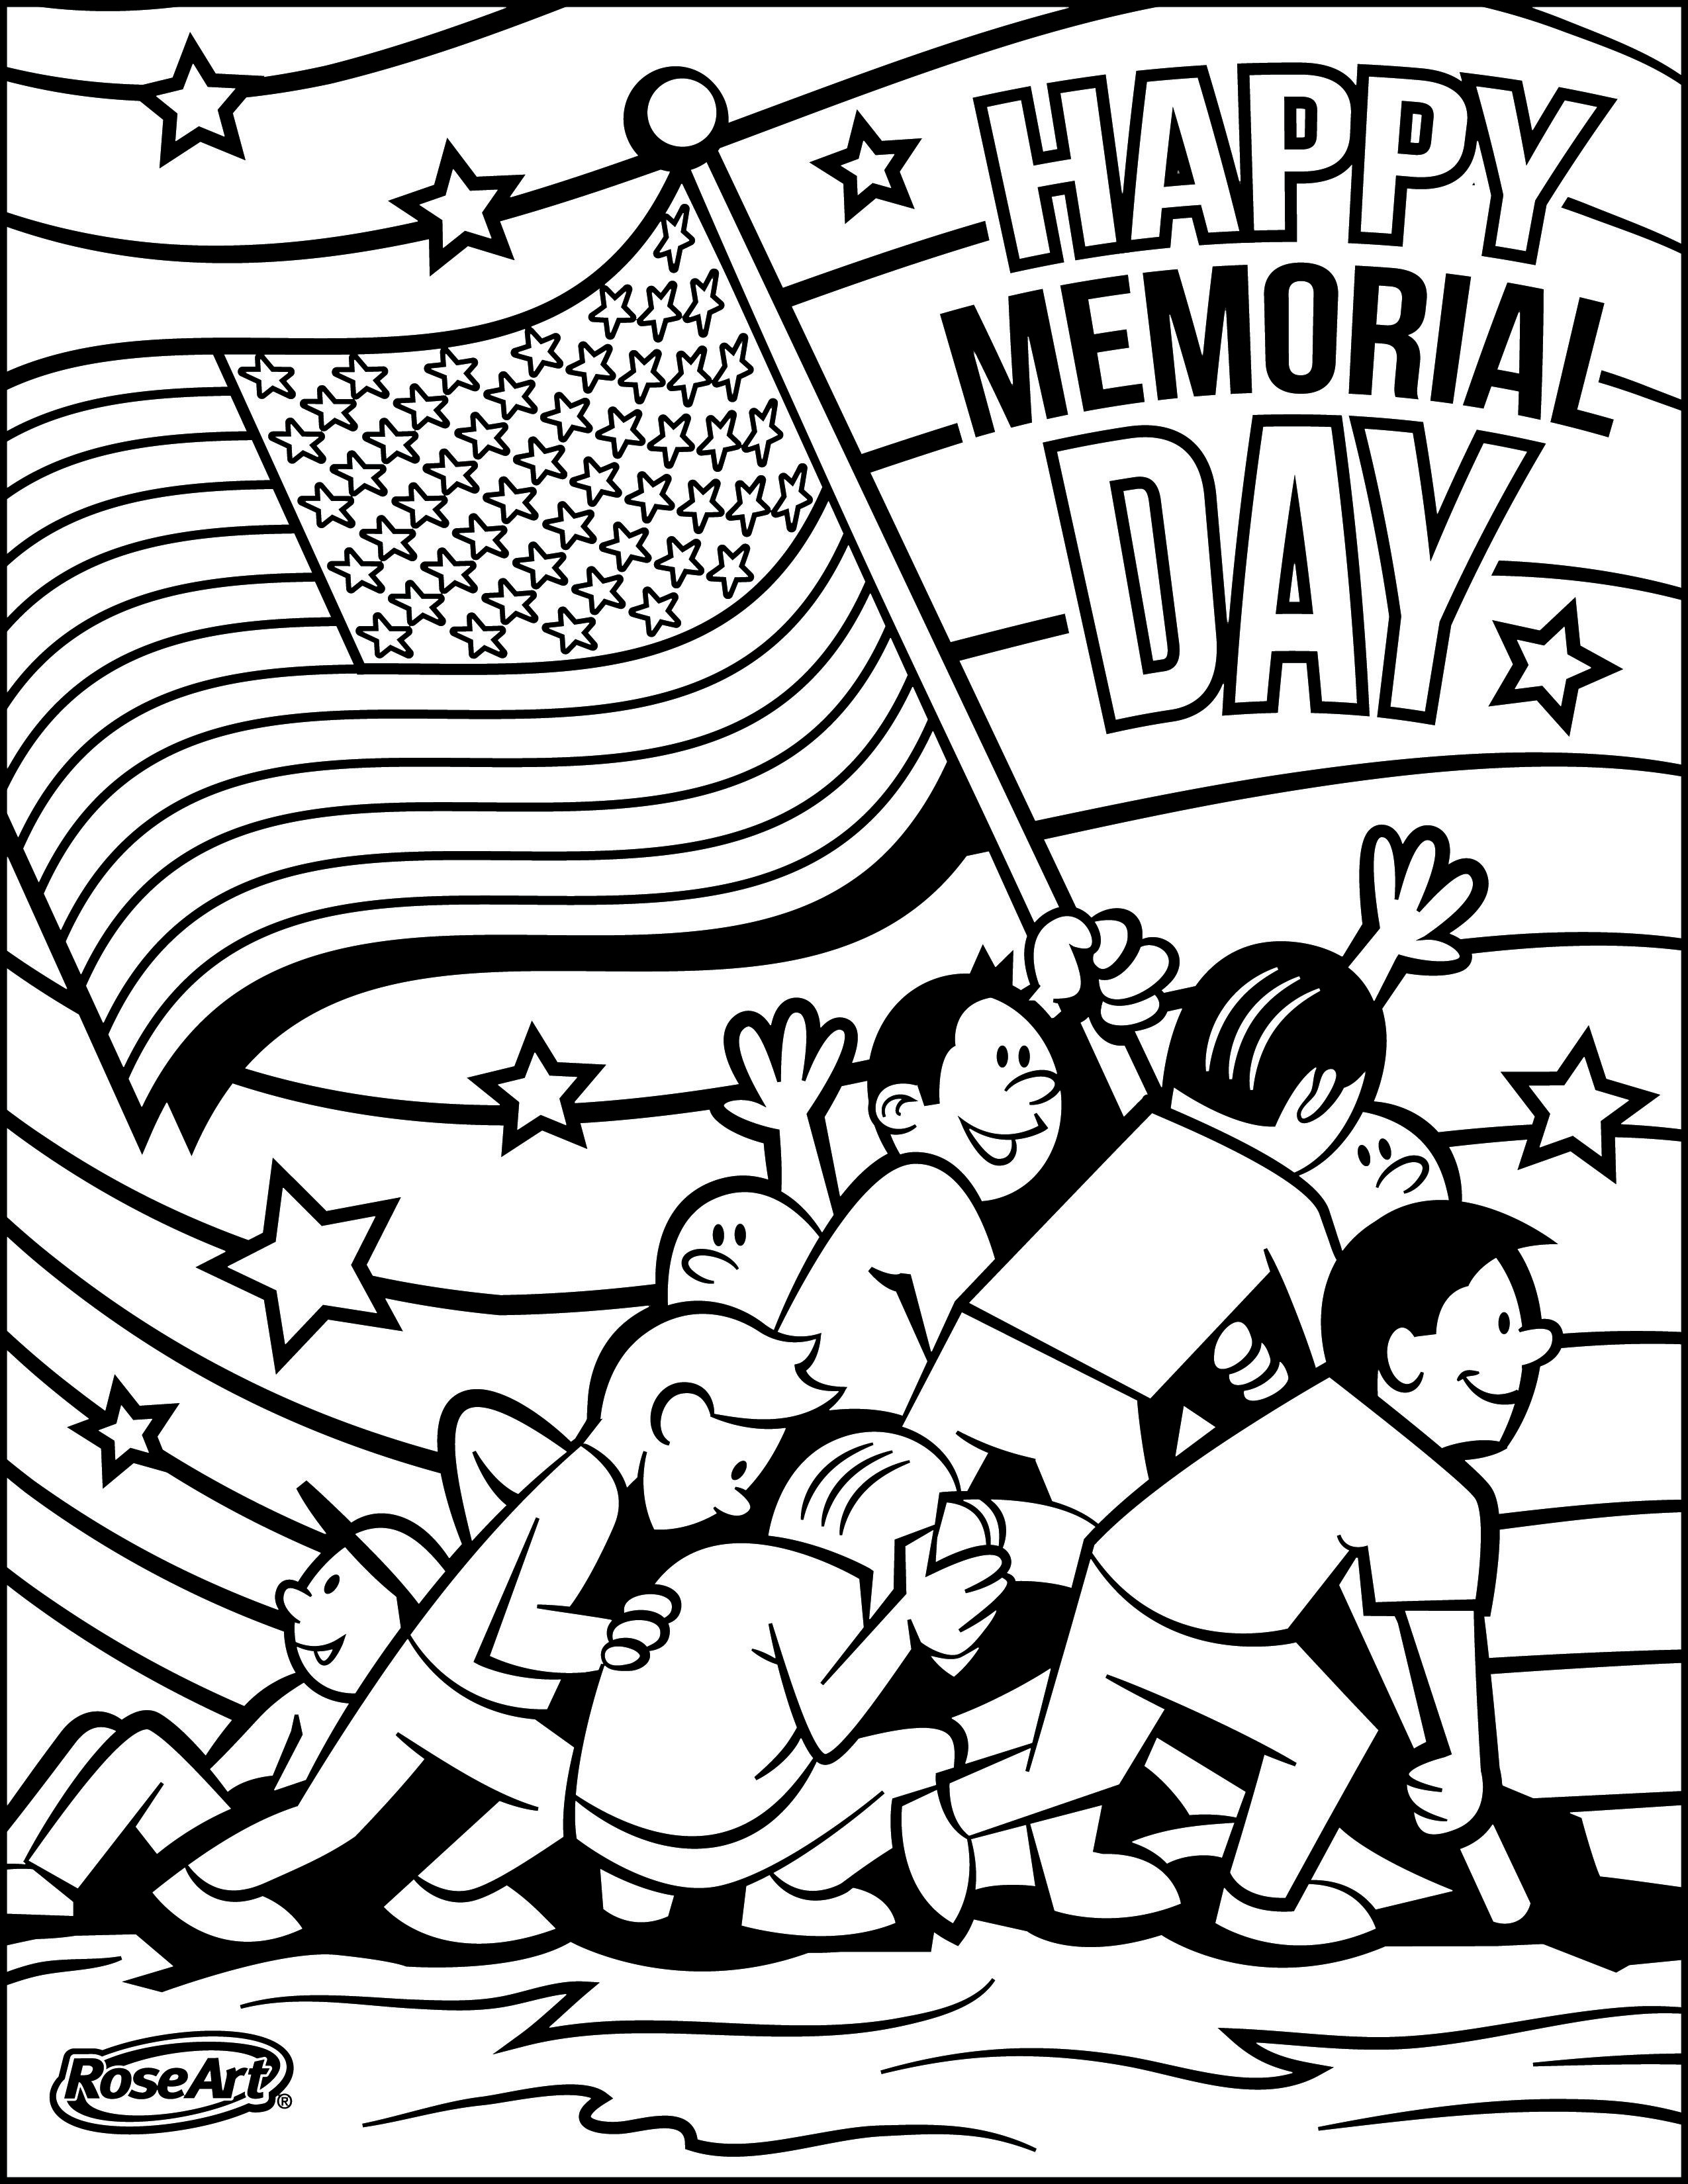 Memorial Day Coloring Pages At Getdrawings Com Free For Personal